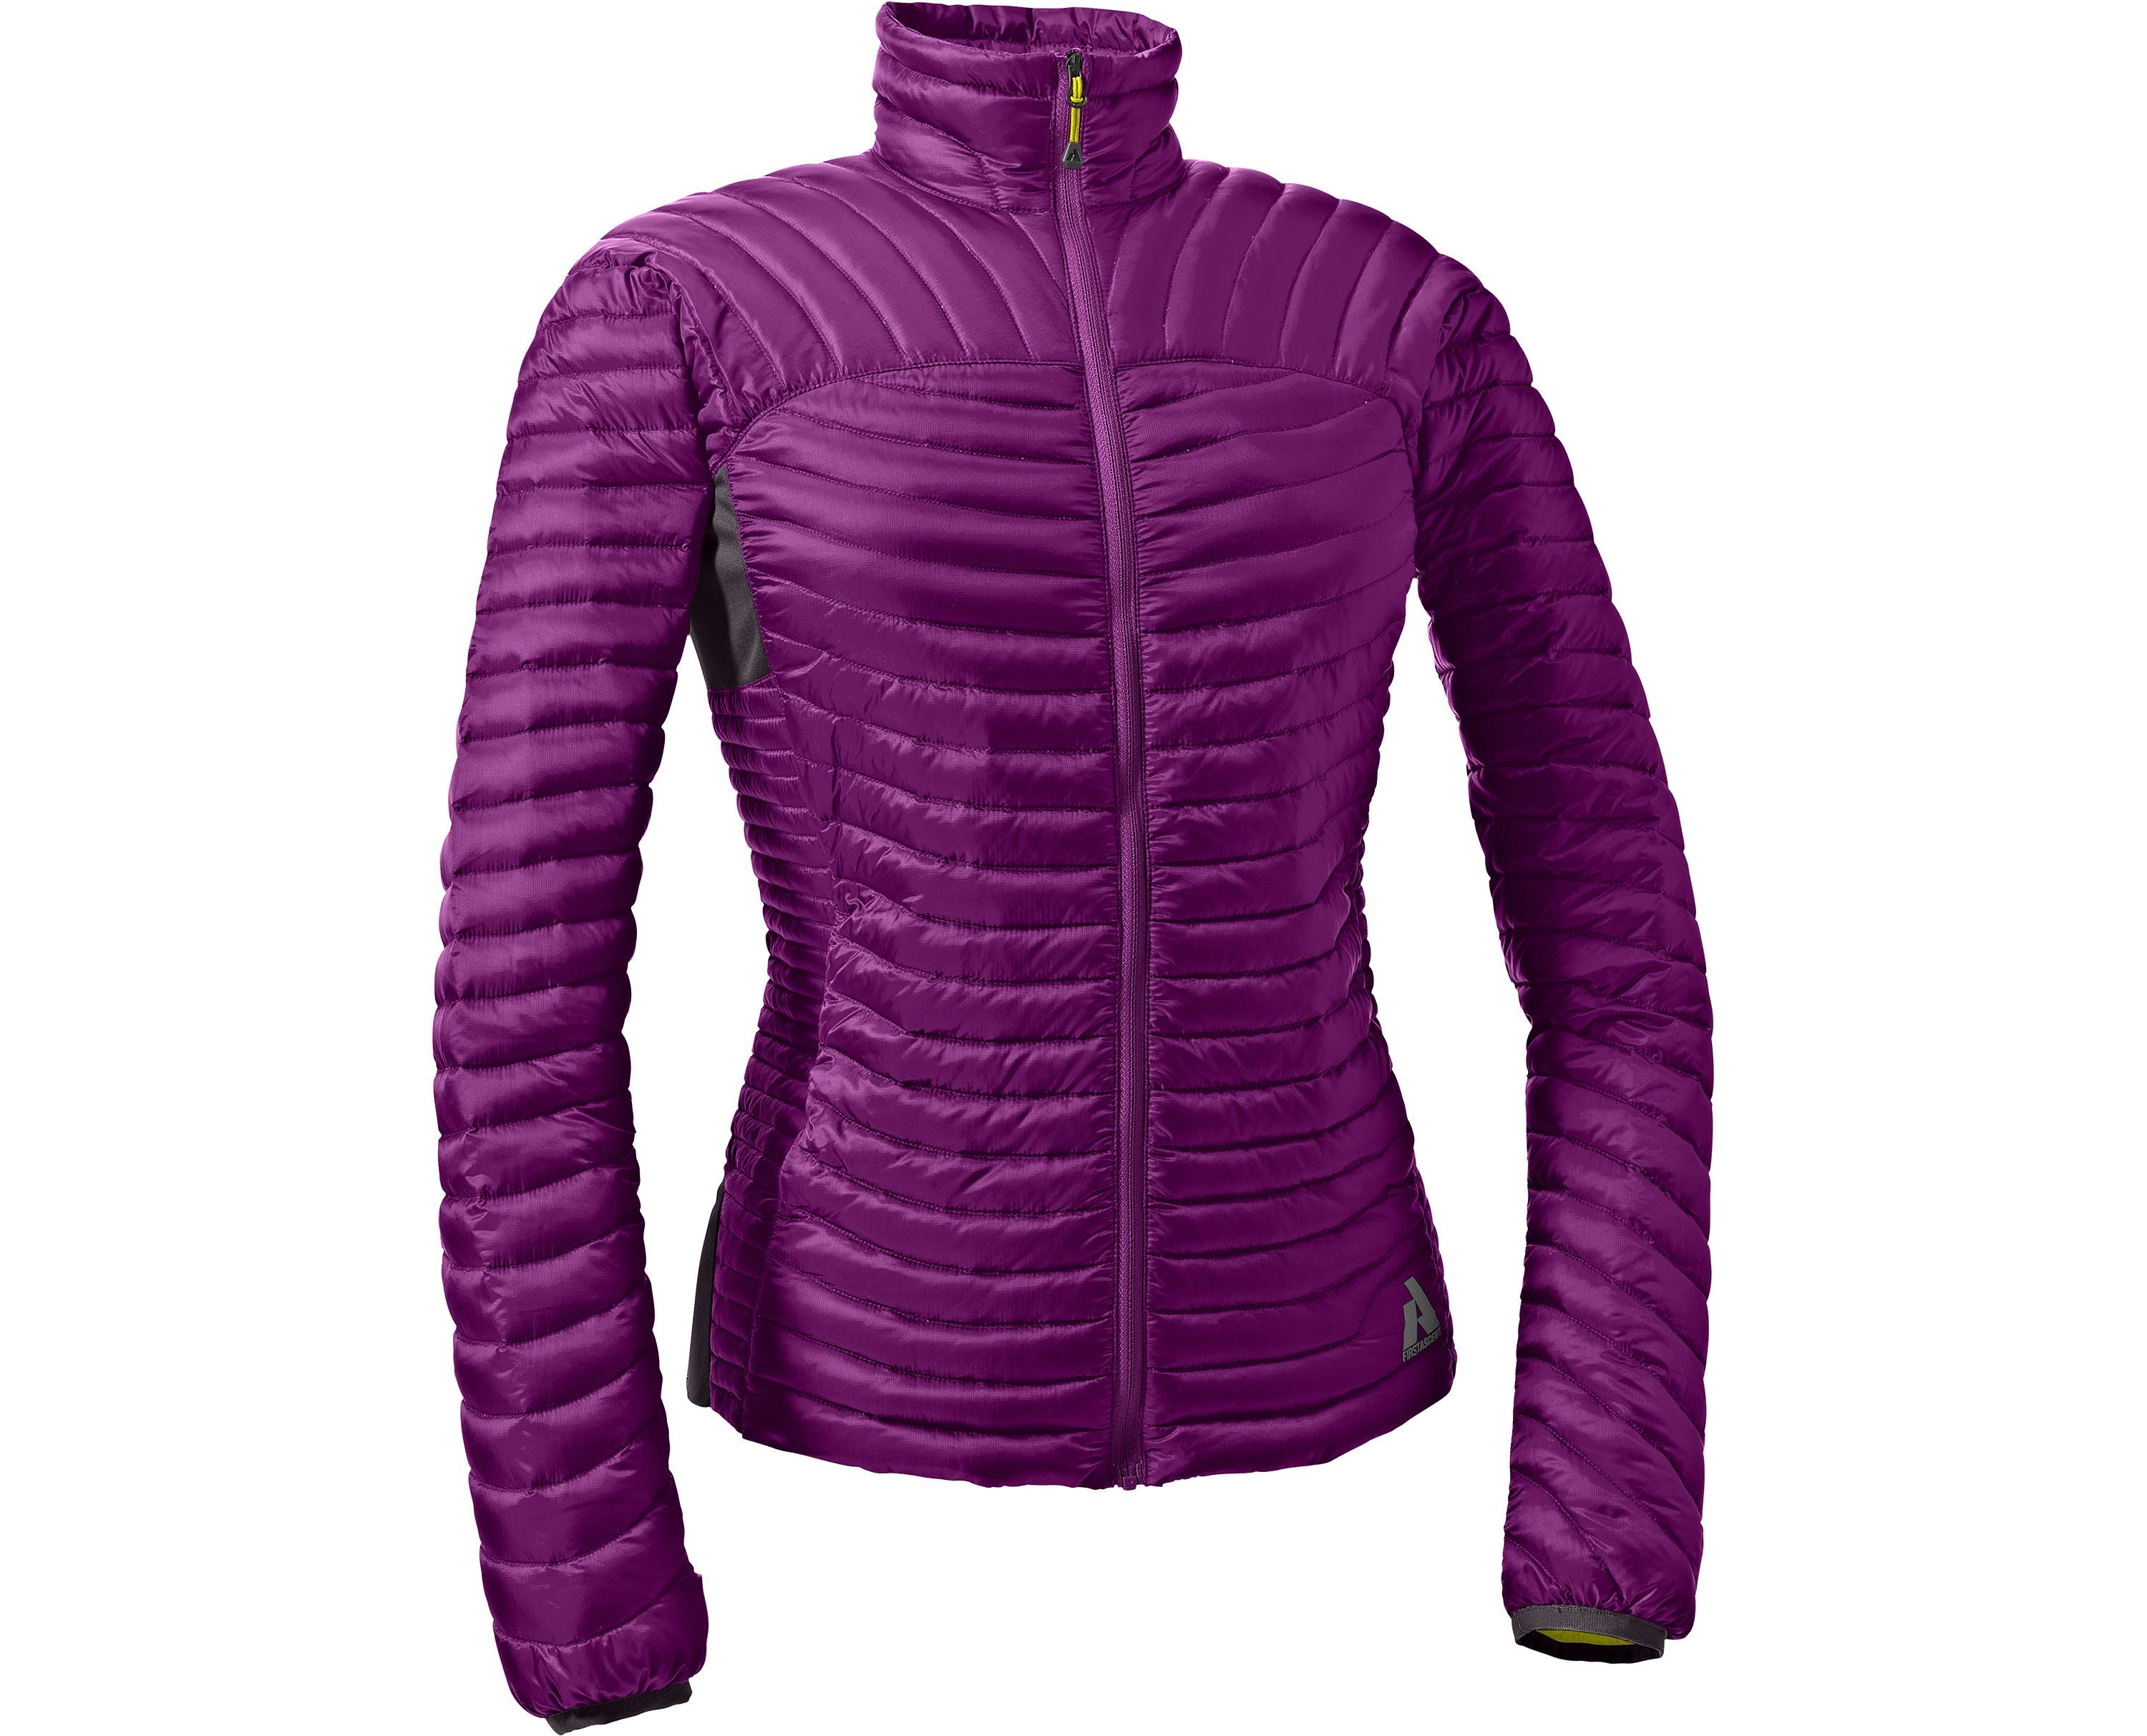 MicroTherm™ Down Shirt First Ascent Coats for women